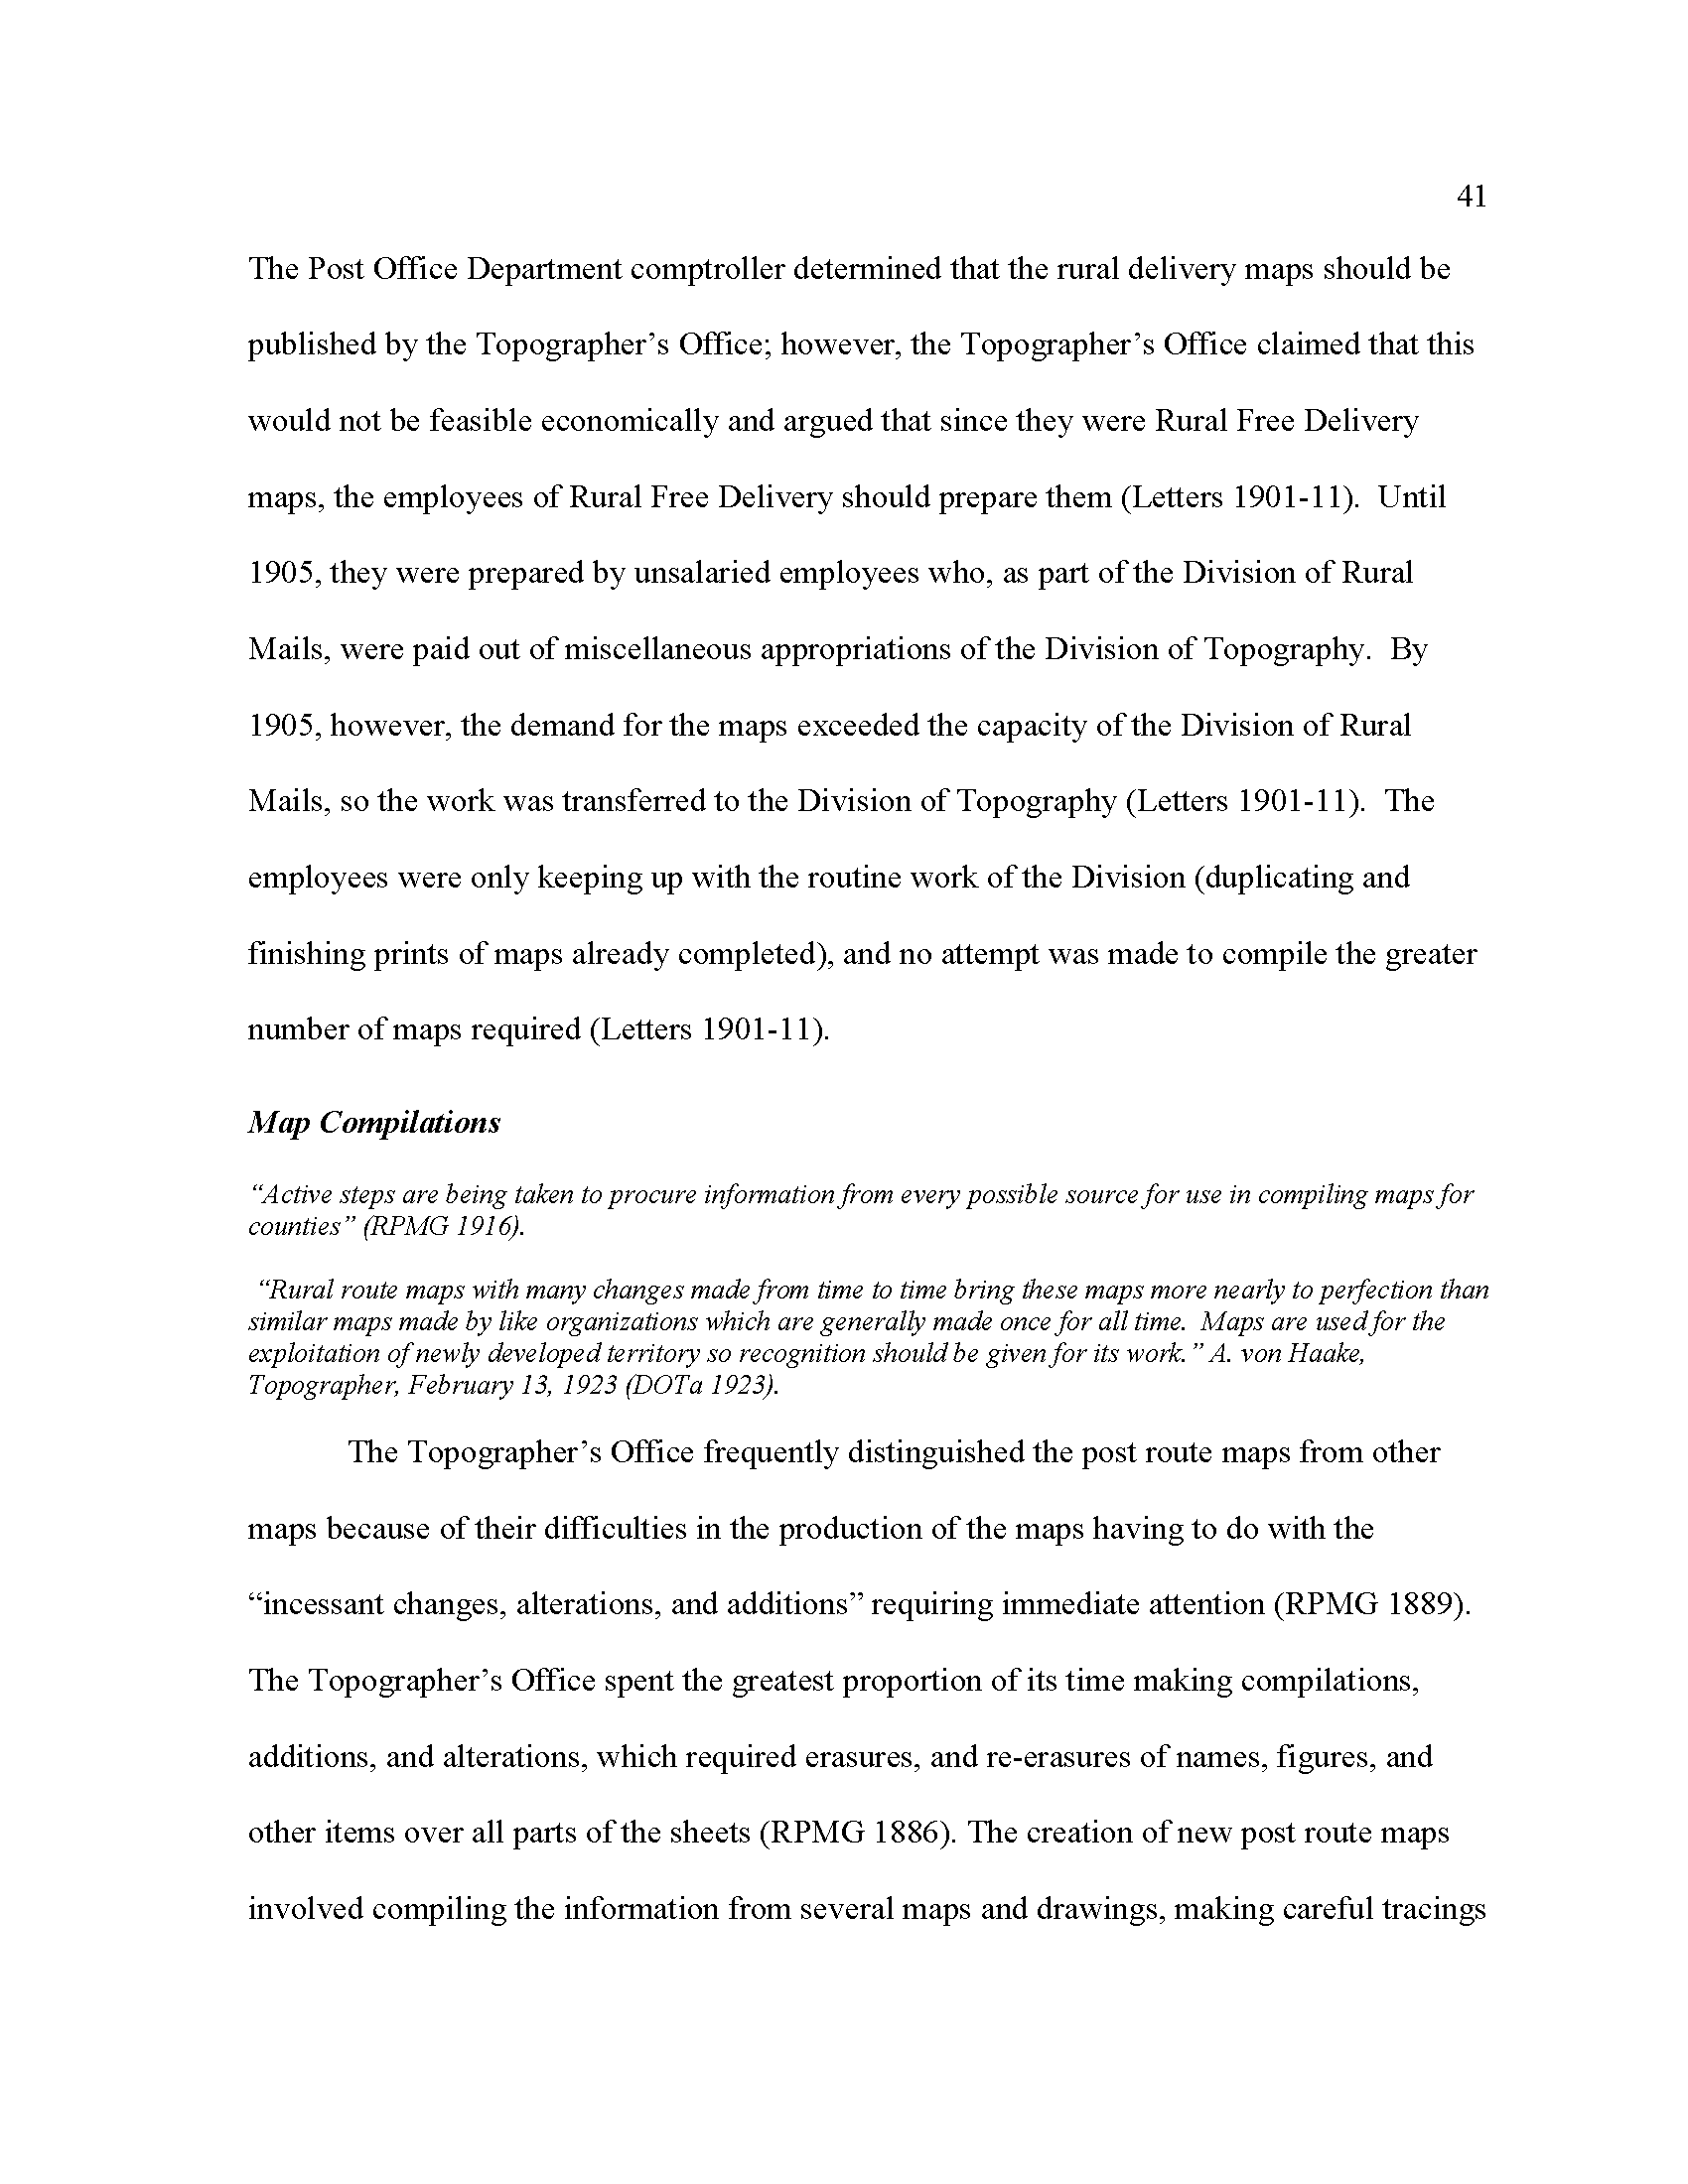 Thesis Final_Page_045.png